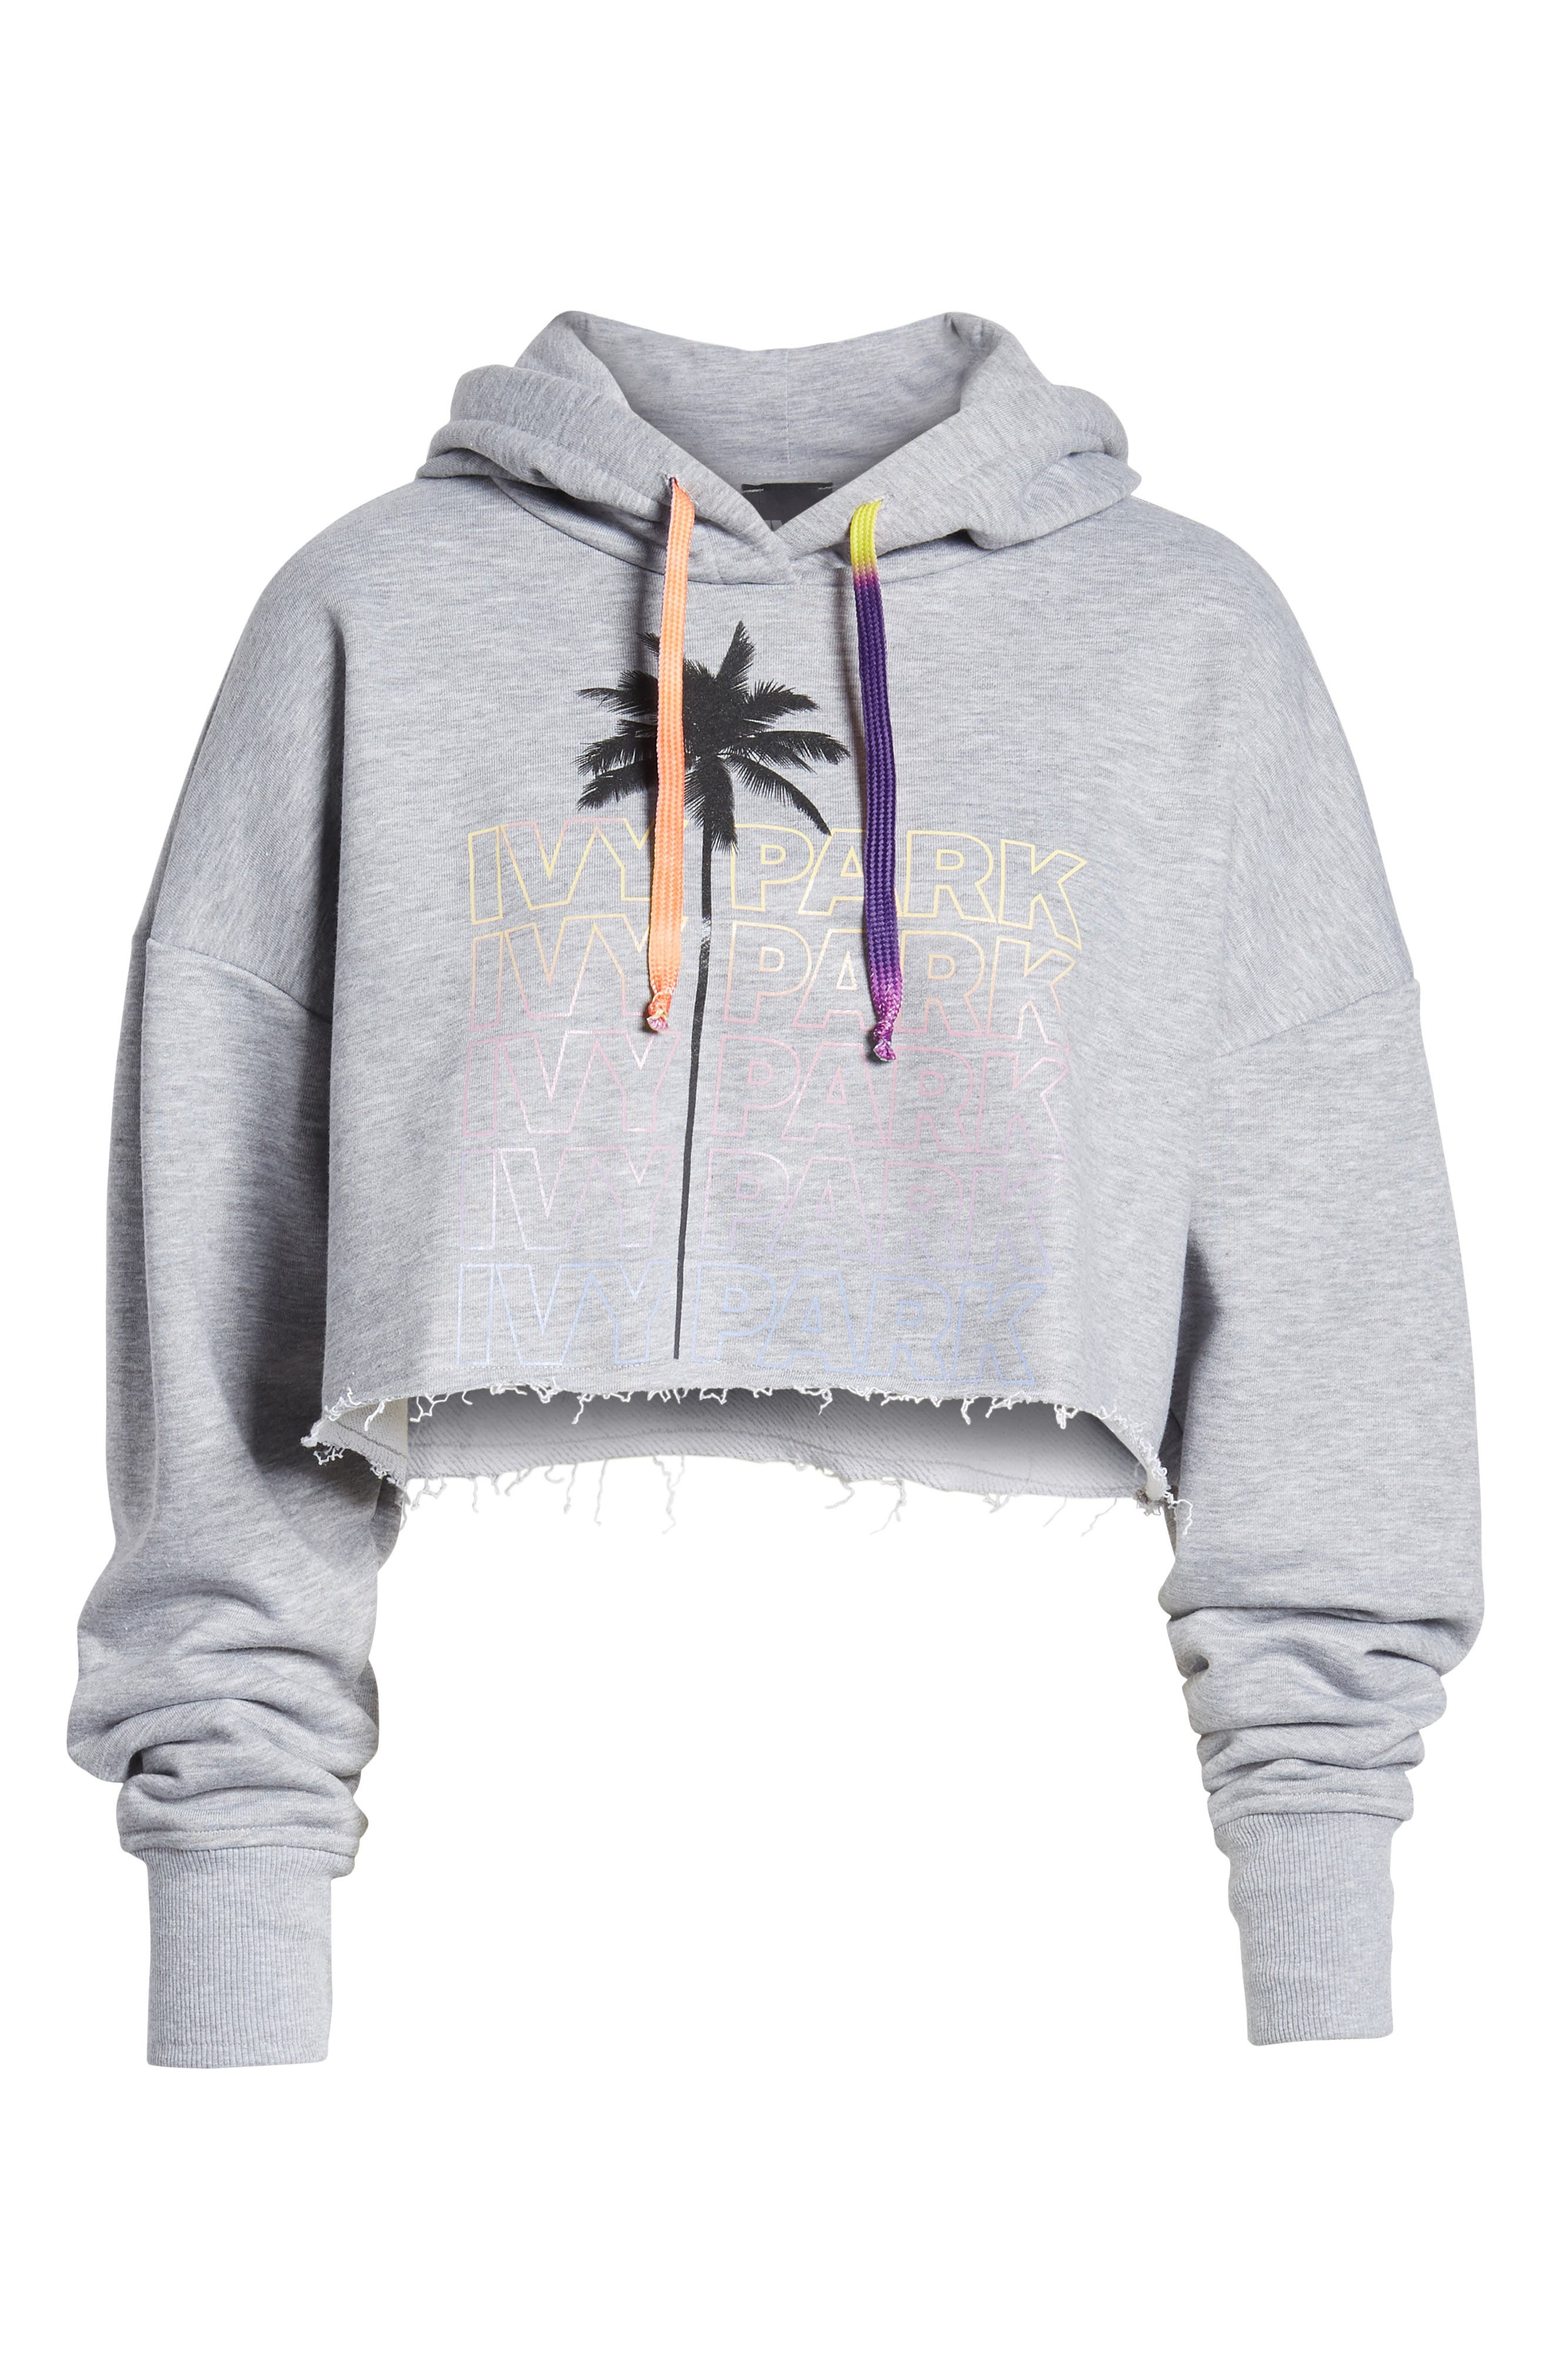 Festival Crop Hoodie,                             Alternate thumbnail 7, color,                             050